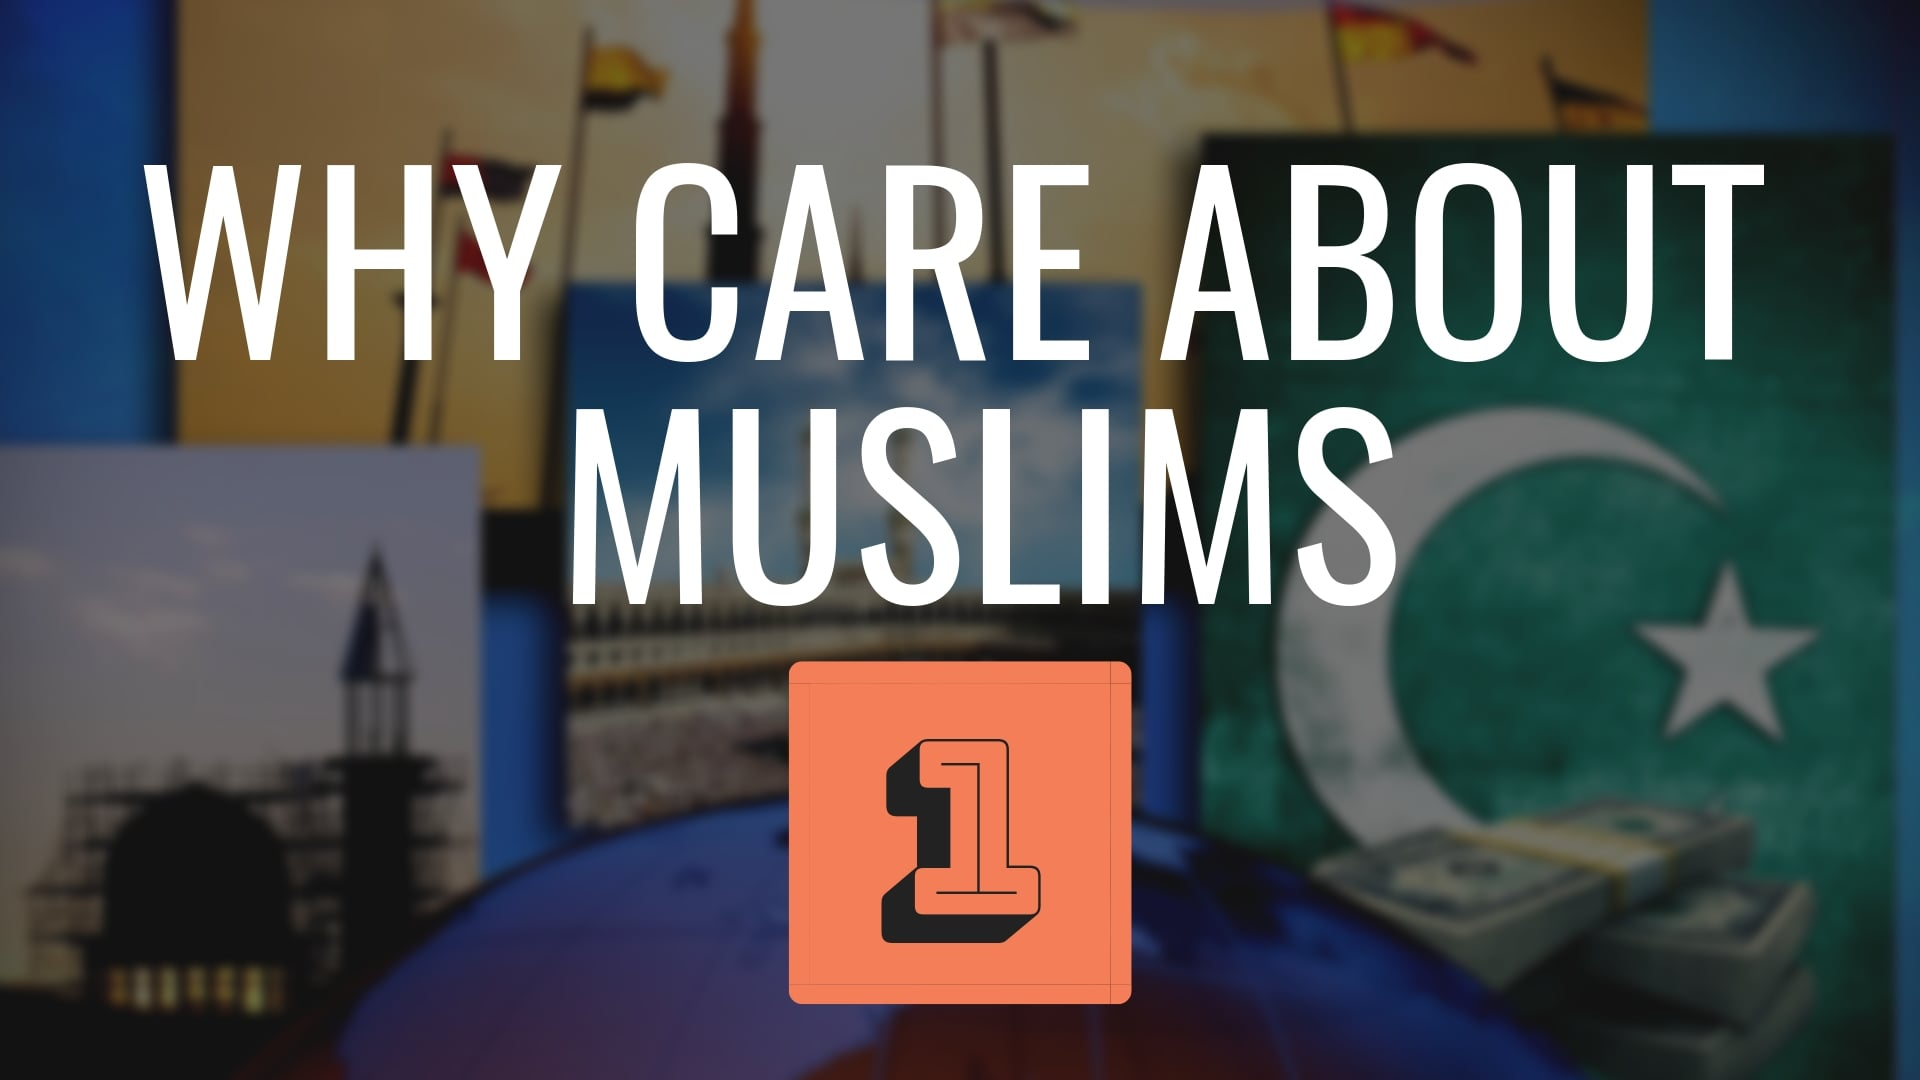 Why Care About Muslims